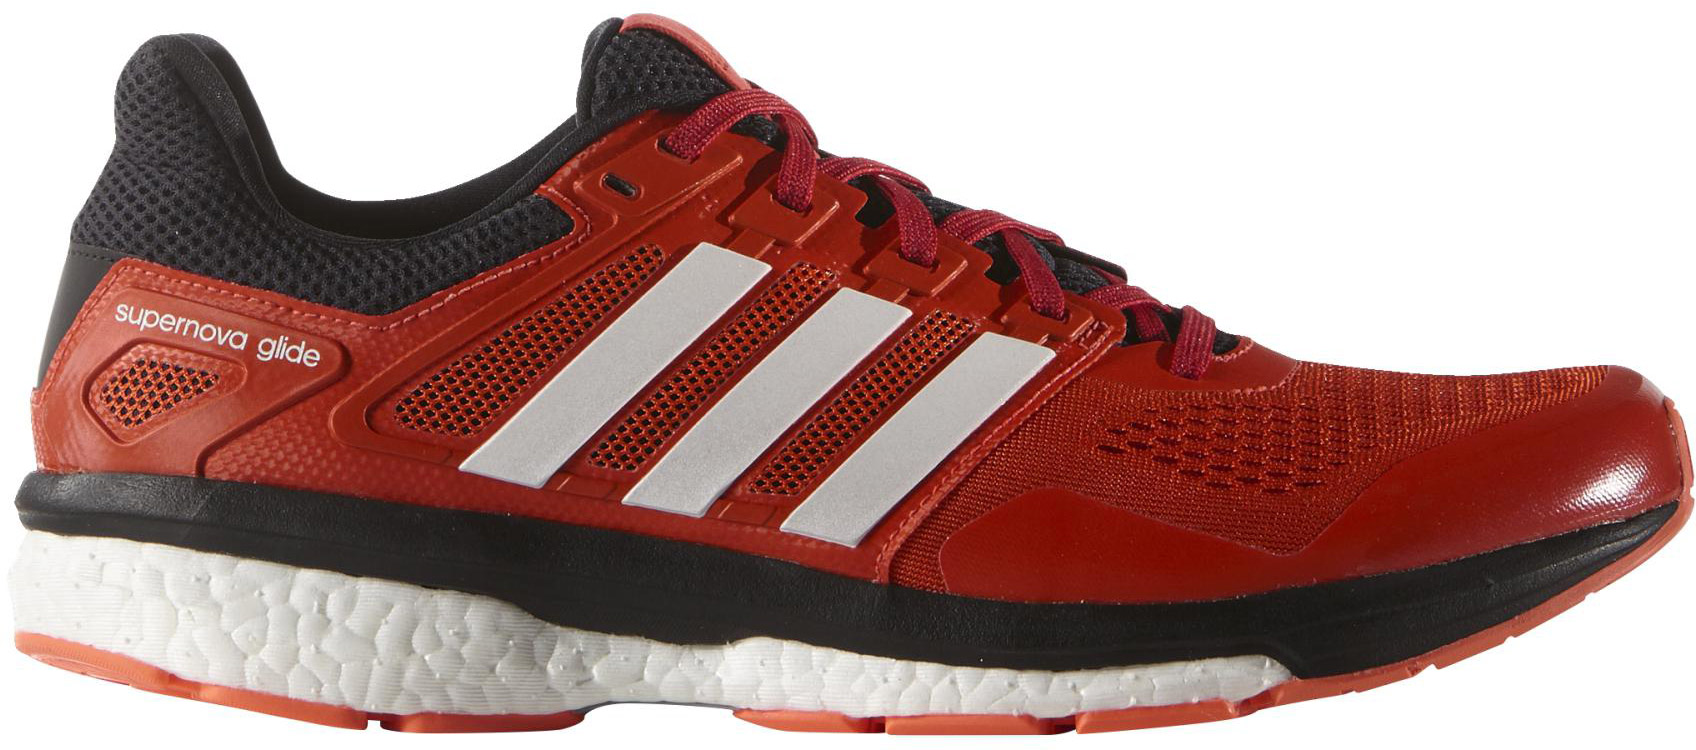 a525019b58e5c adidas SUPERNOVA GLIDE BOOST 8 M. Men s running shoes